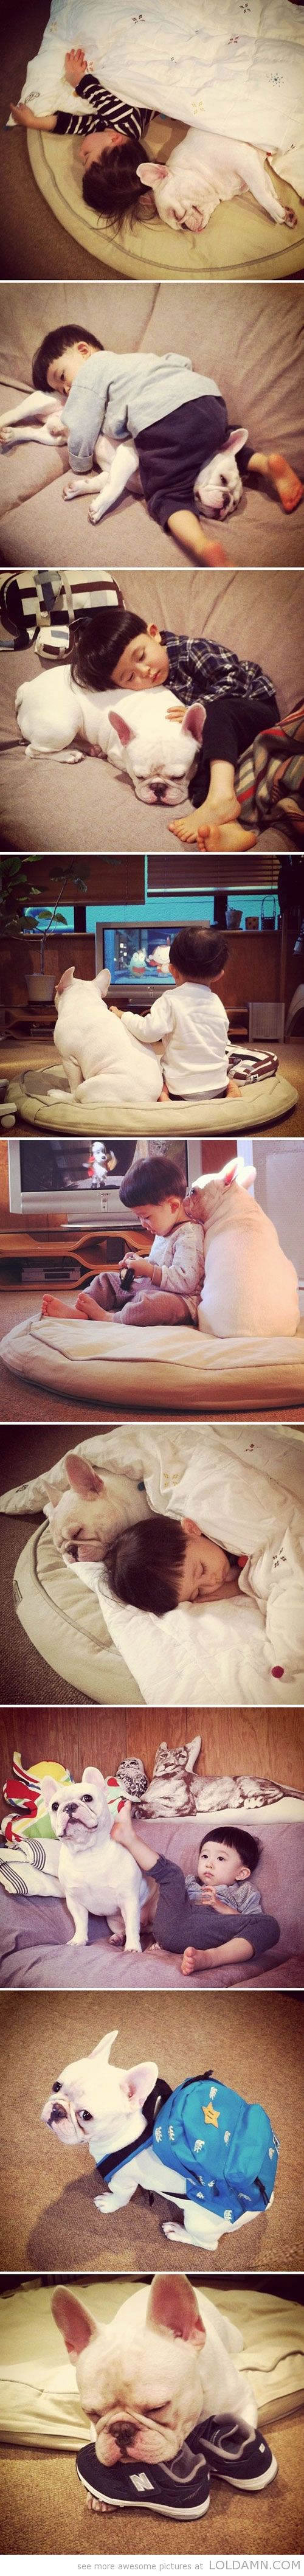 The Sweetest Friendship // French bulldog and a little boy